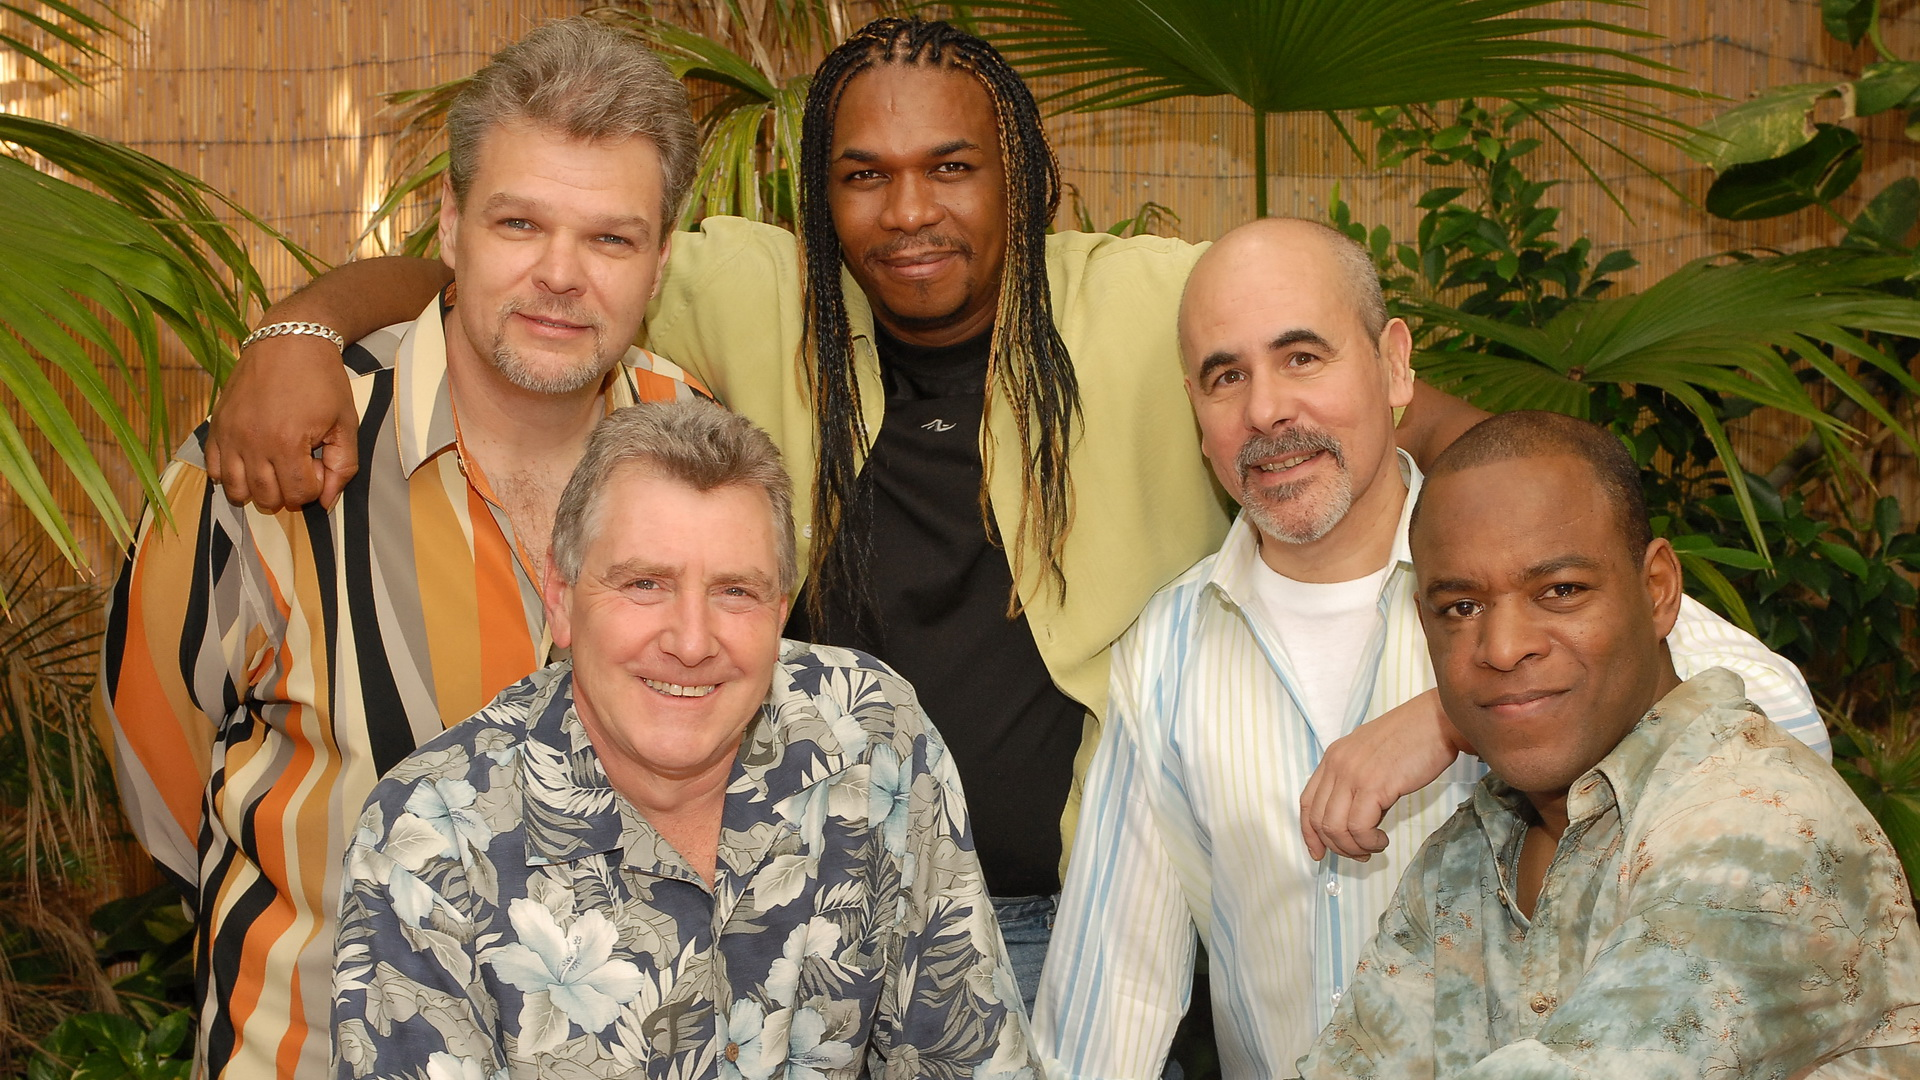 Morning Dance av Spyro Gyra